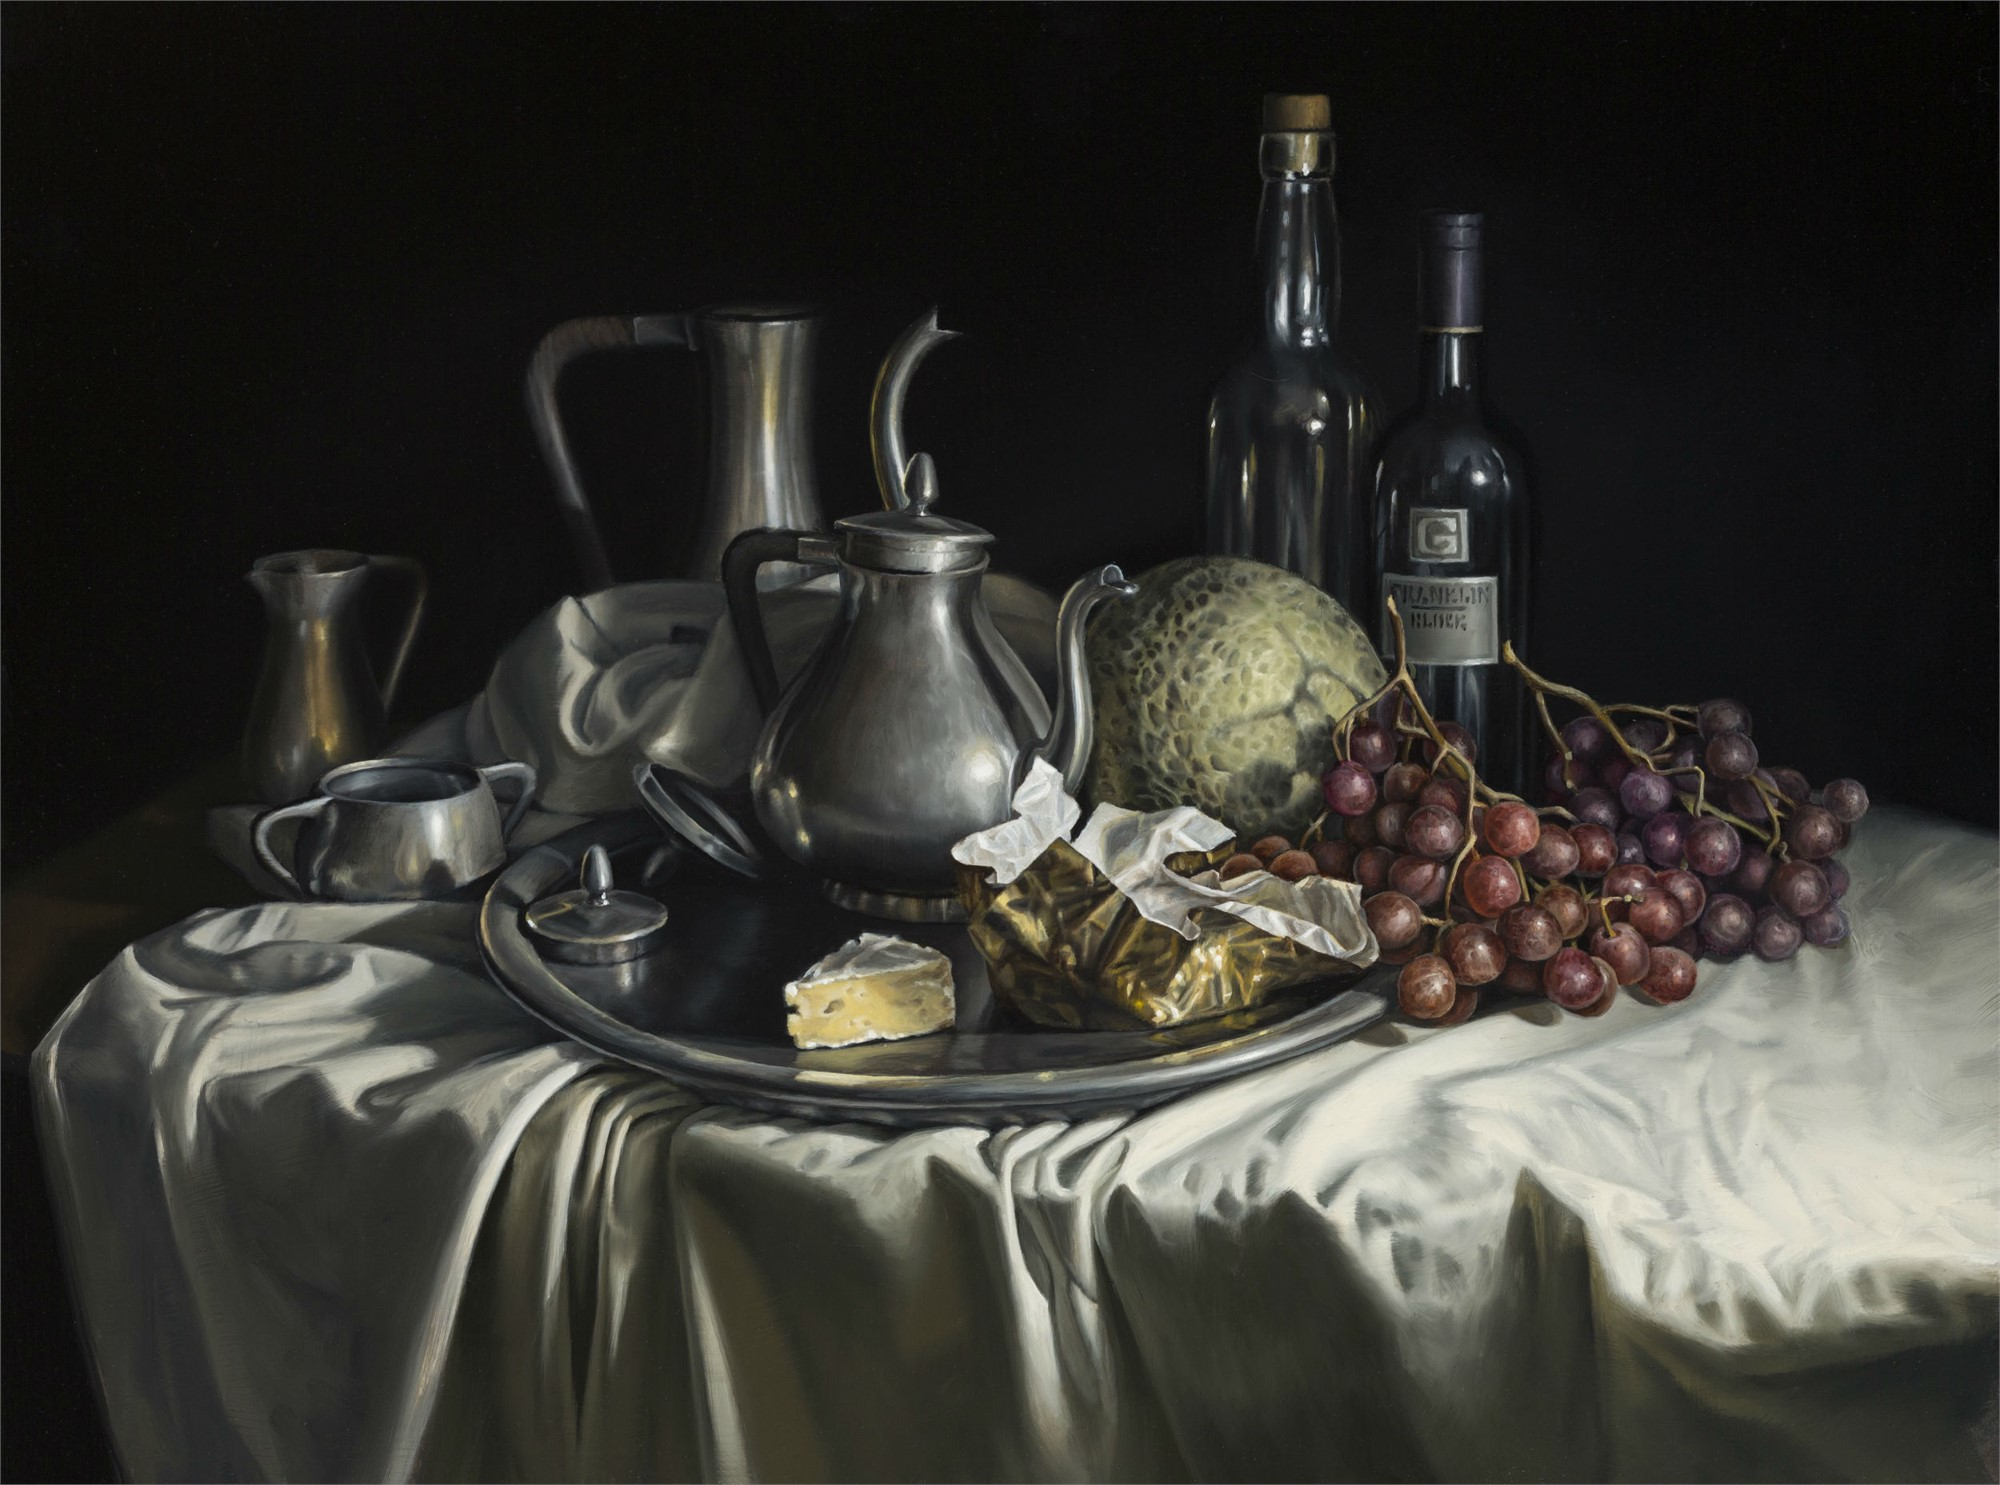 Grapes and Brie by Gregory Block